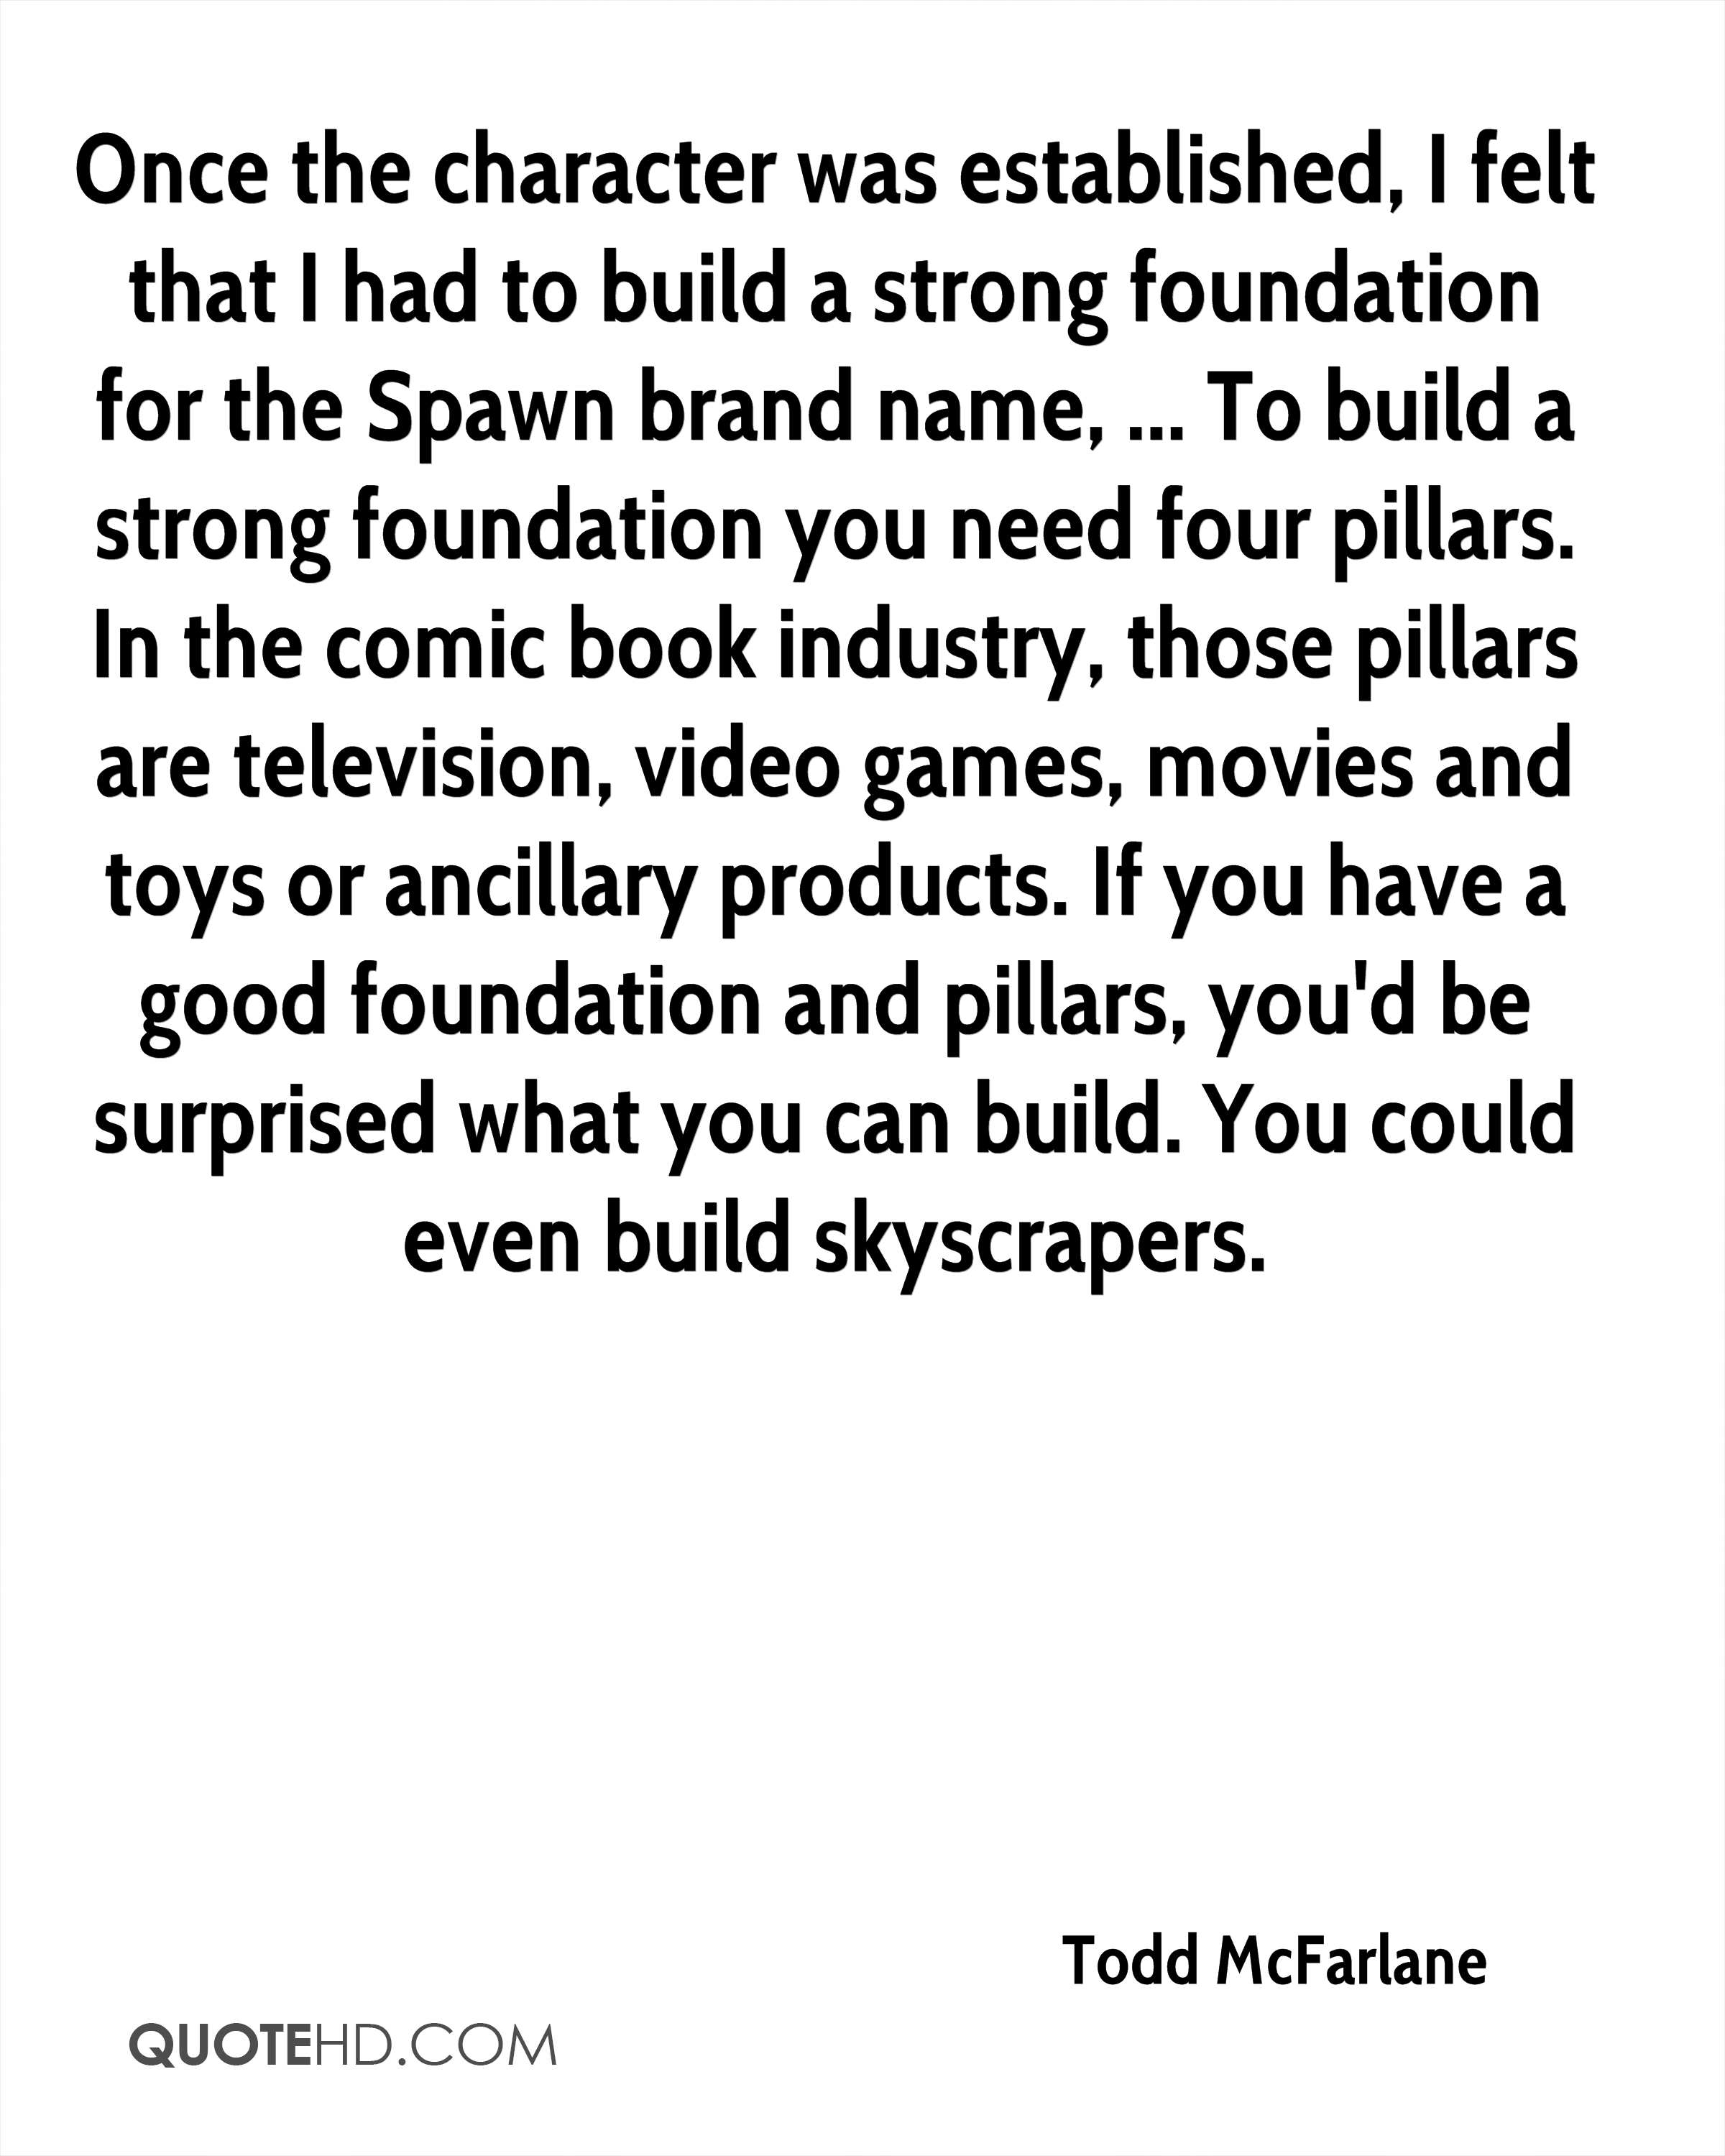 Once the character was established, I felt that I had to build a strong foundation for the Spawn brand name, ... To build a strong foundation you need four pillars. In the comic book industry, those pillars are television, video games, movies and toys or ancillary products. If you have a good foundation and pillars, you'd be surprised what you can build. You could even build skyscrapers.